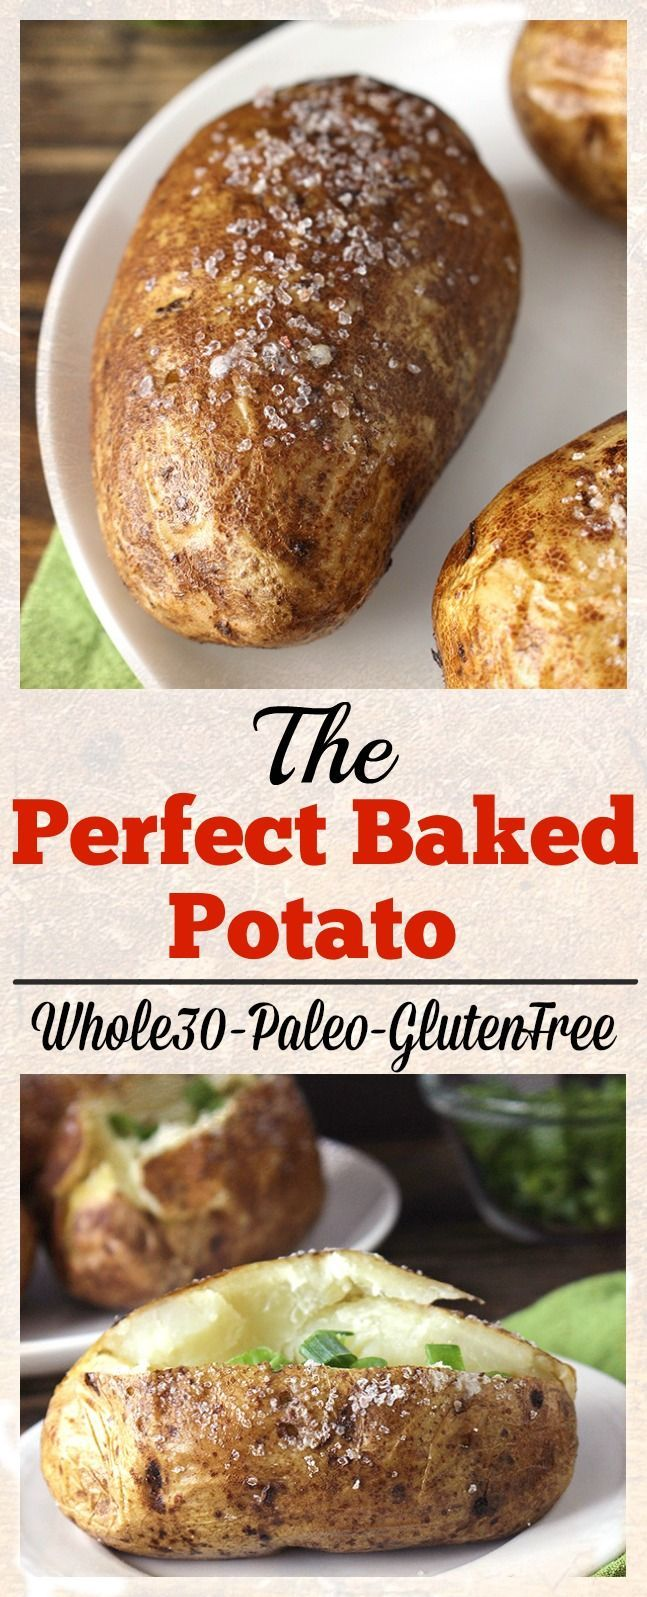 The perfect baked potato recipe perfect baked potato and baked the perfect baked potato recipe perfect baked potato and baked potatoes ccuart Choice Image